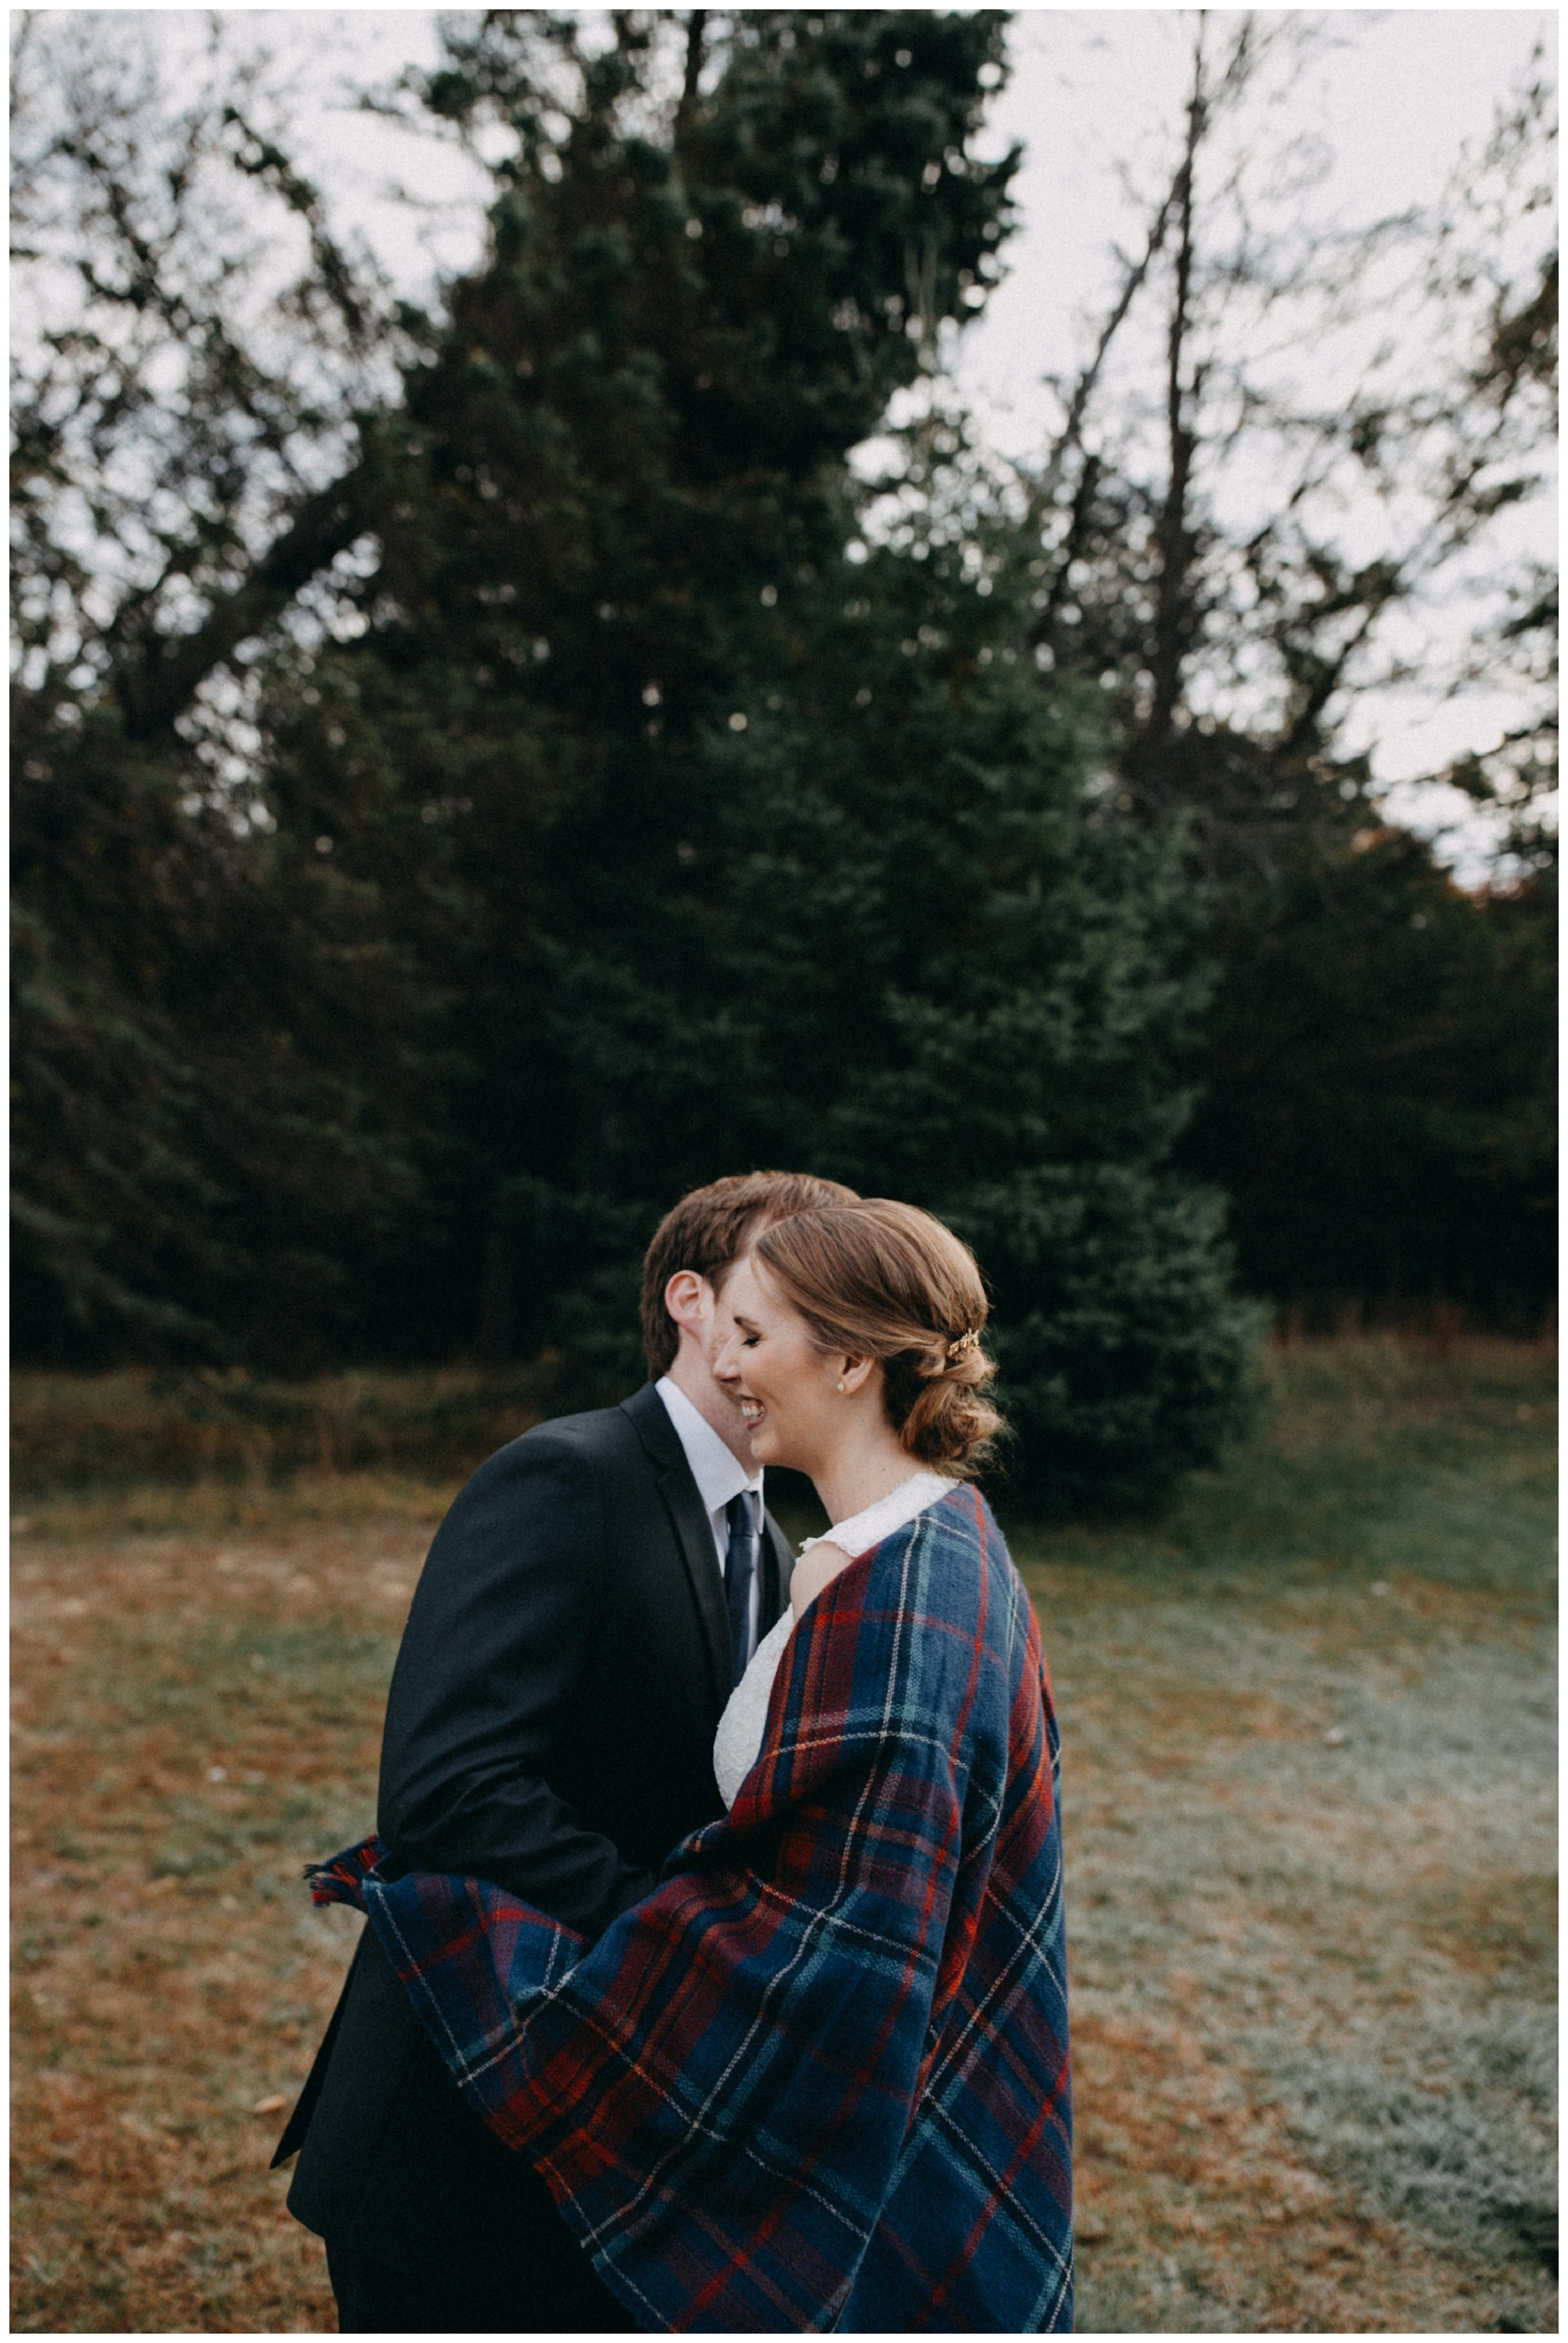 Cozy fall wedding at the Northland Arboretum